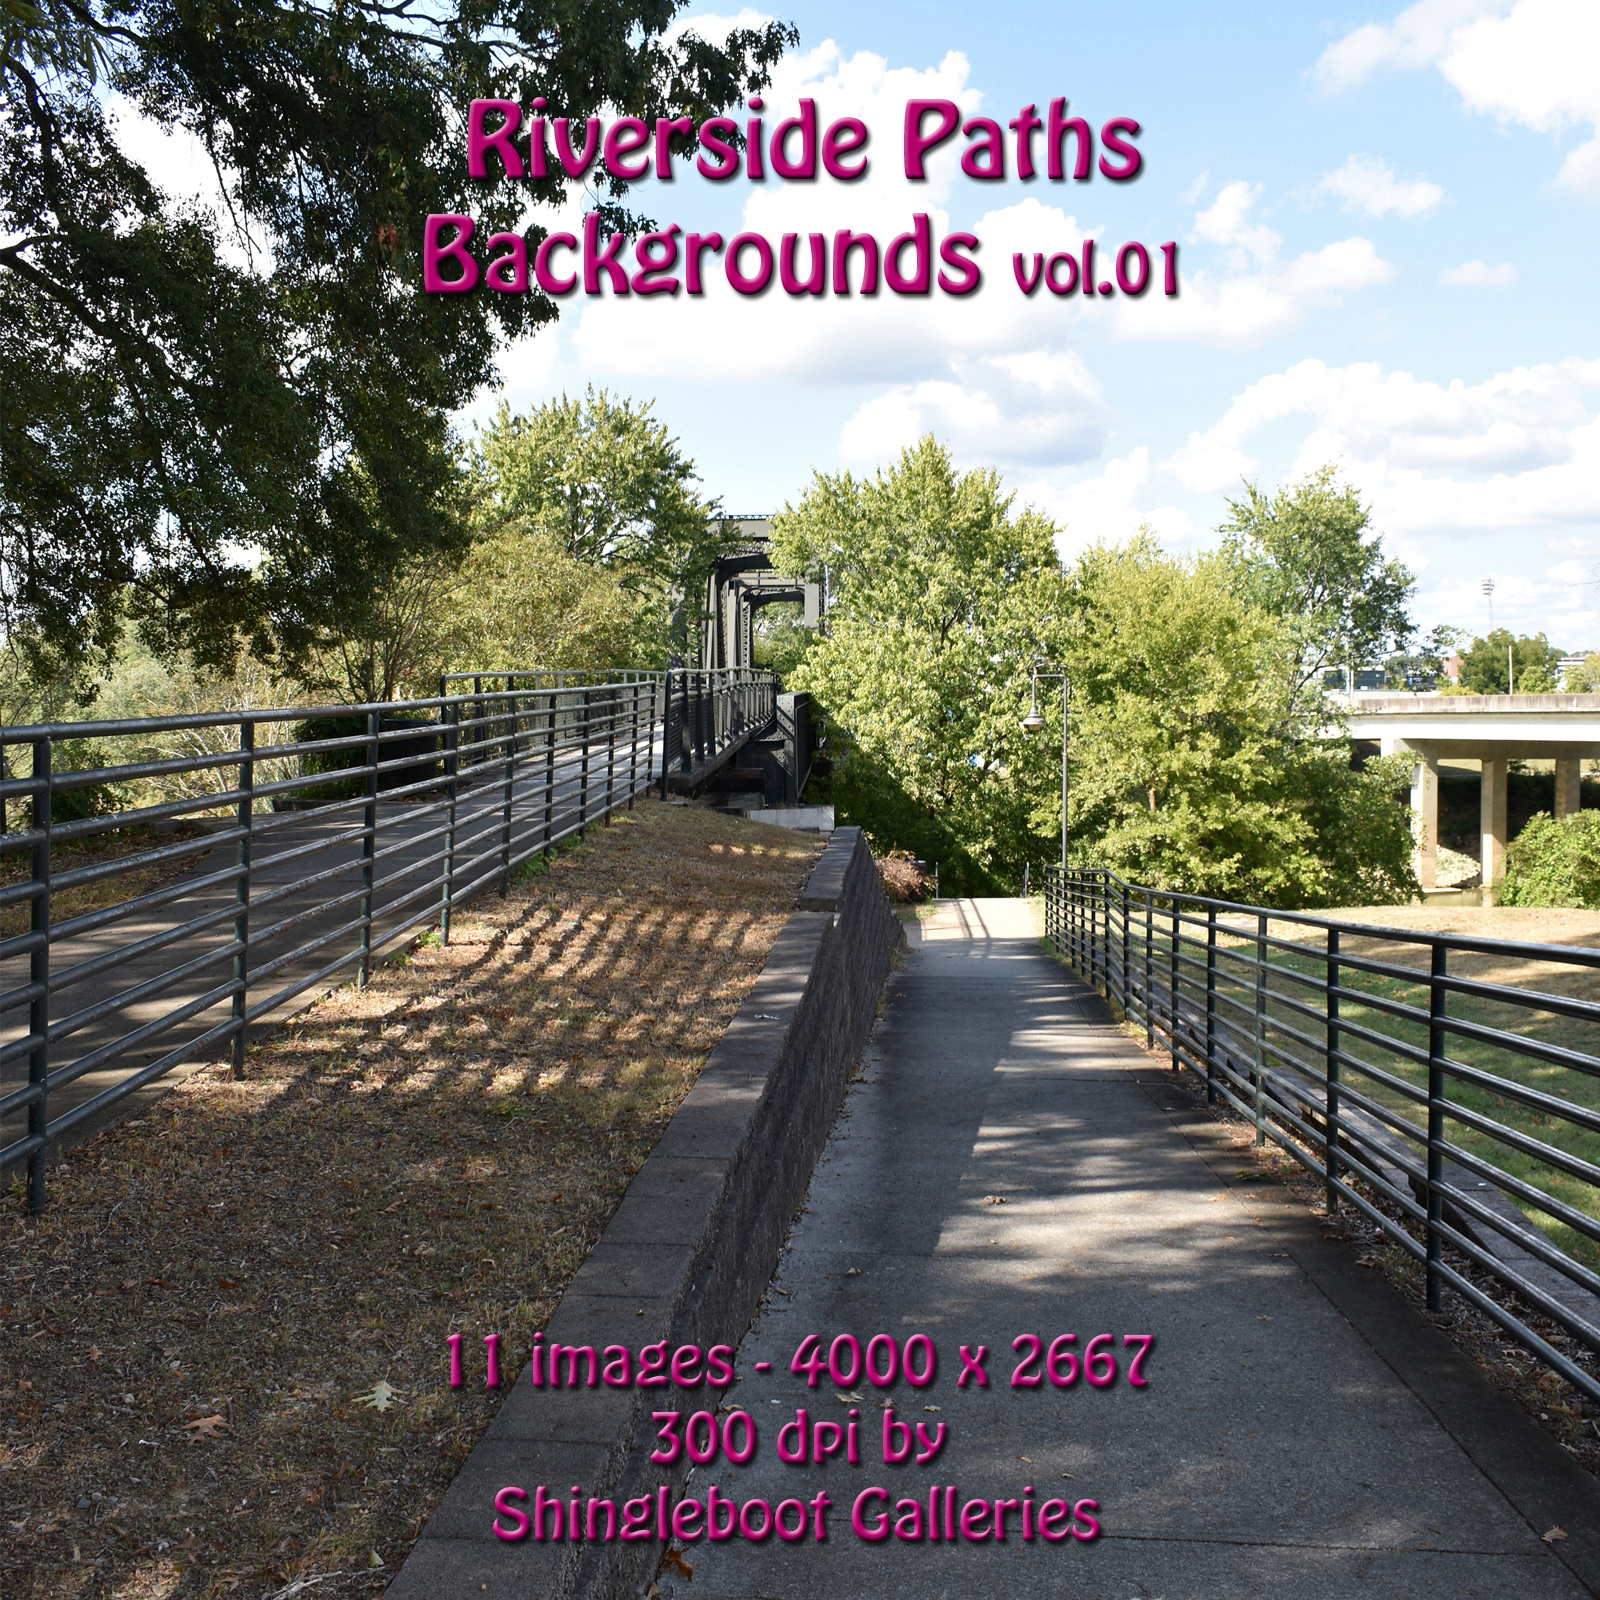 Riverside Paths Backgrounds vol.1 by shingleboot